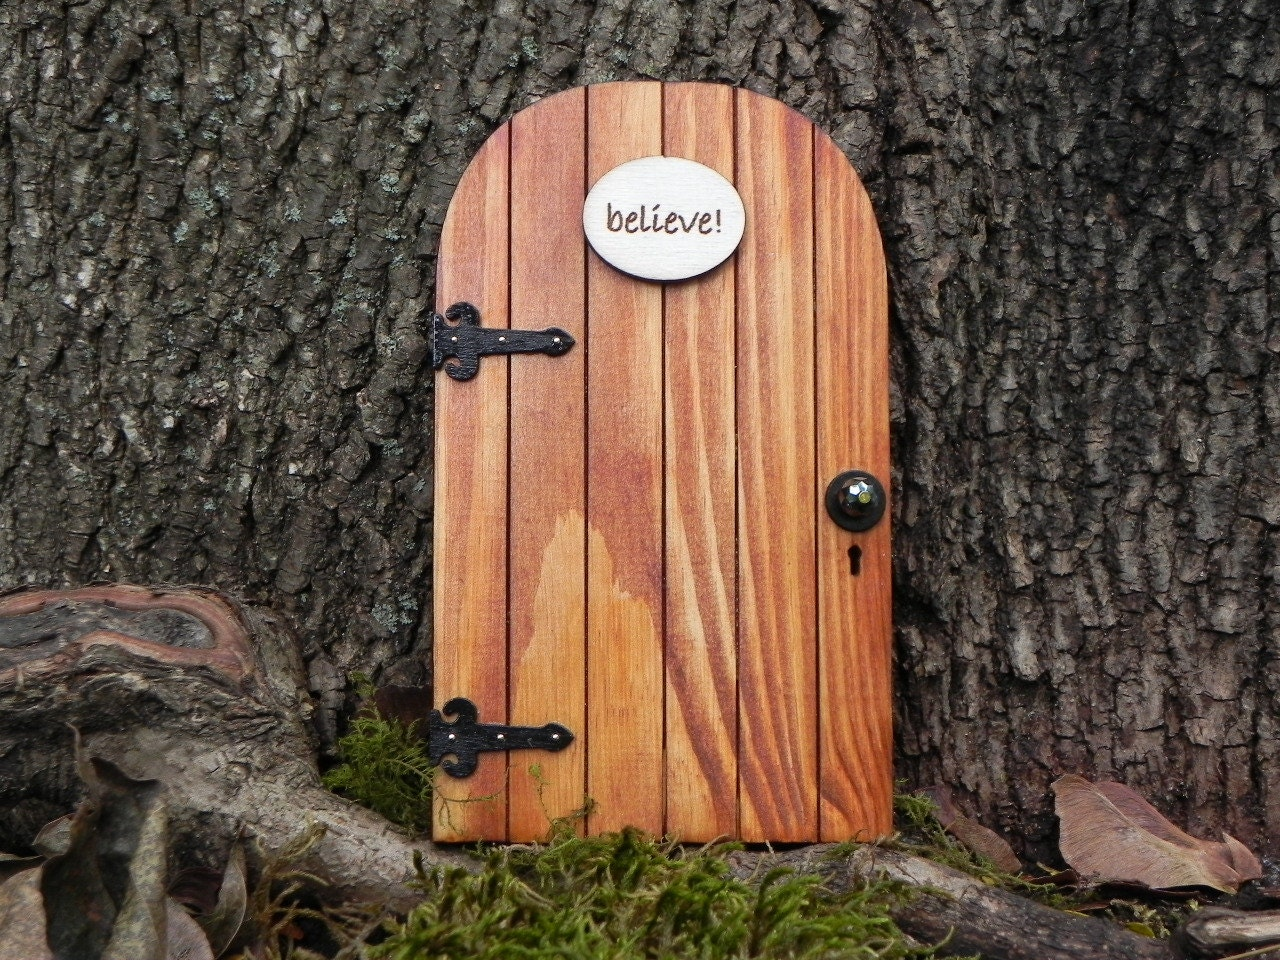 Fairy door fairy garden miniature wood believe for Wooden fairy doors